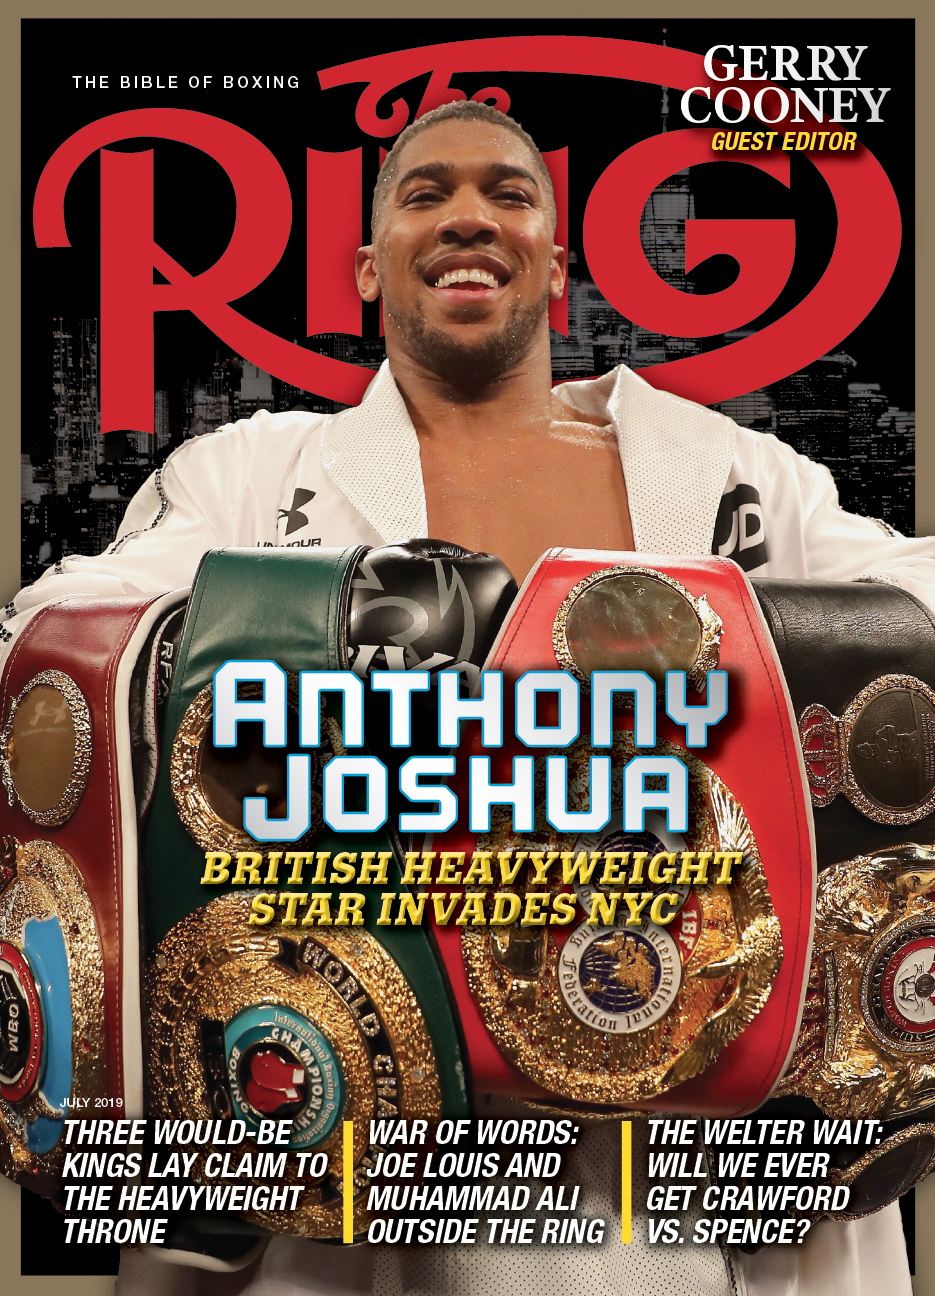 The Ring digital magazine: July 2019 issue now available